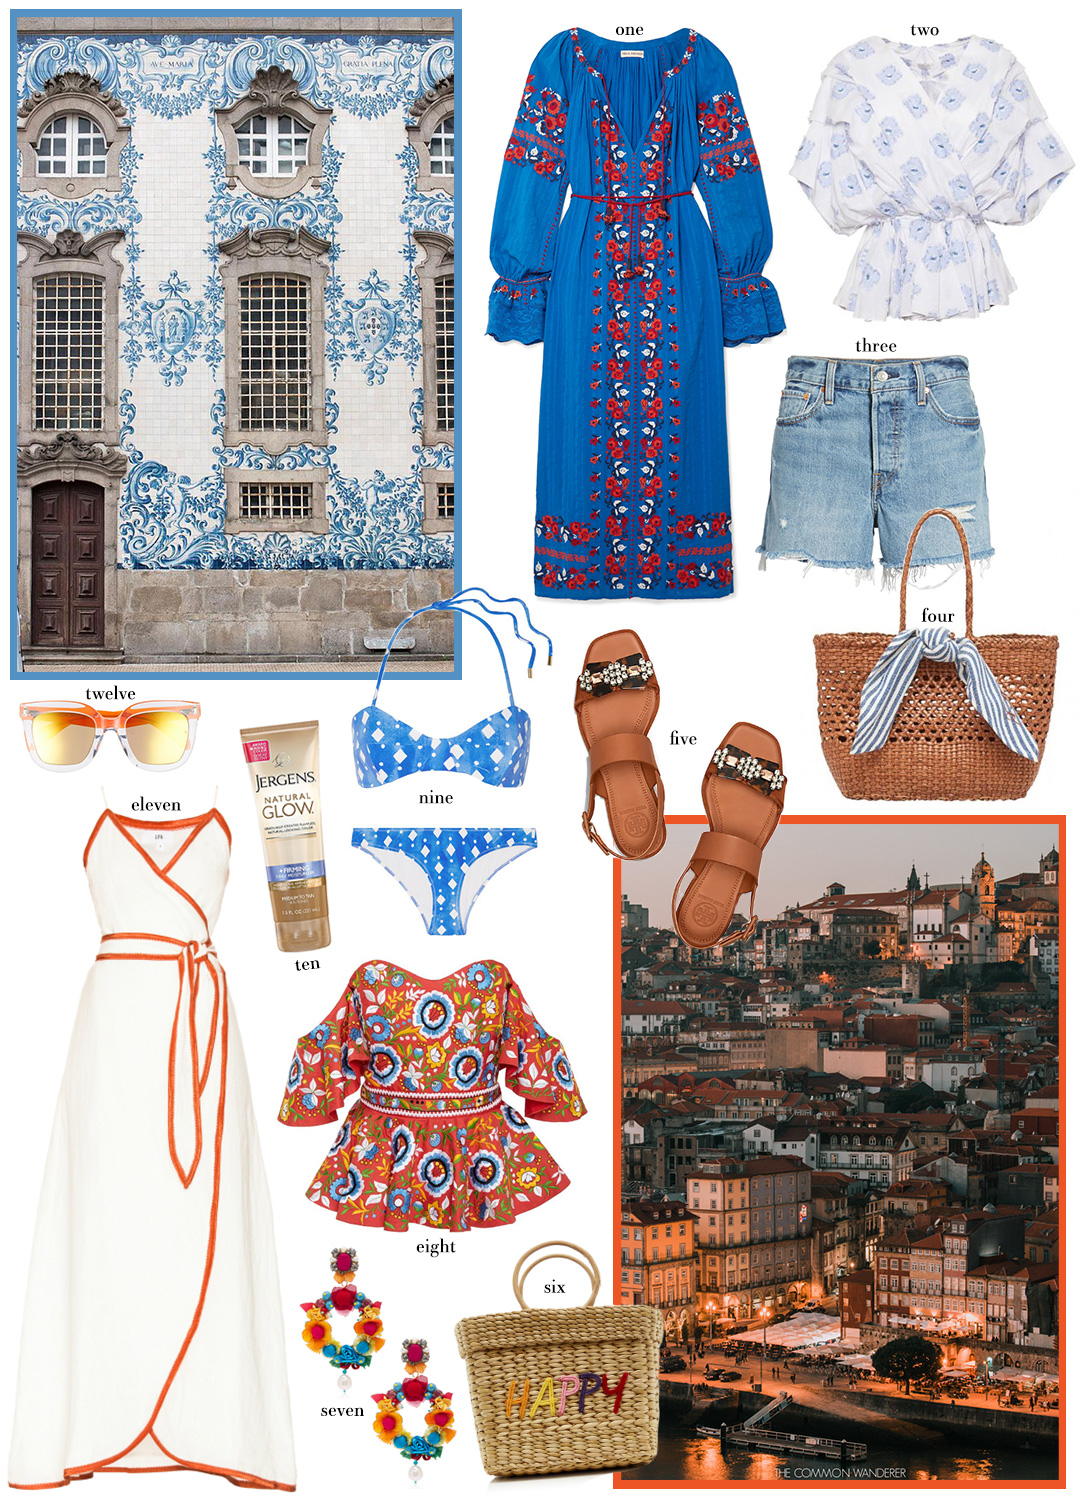 Travel Style Inspiration: Portugal | Outfit Ideas for Lisbon and Porto